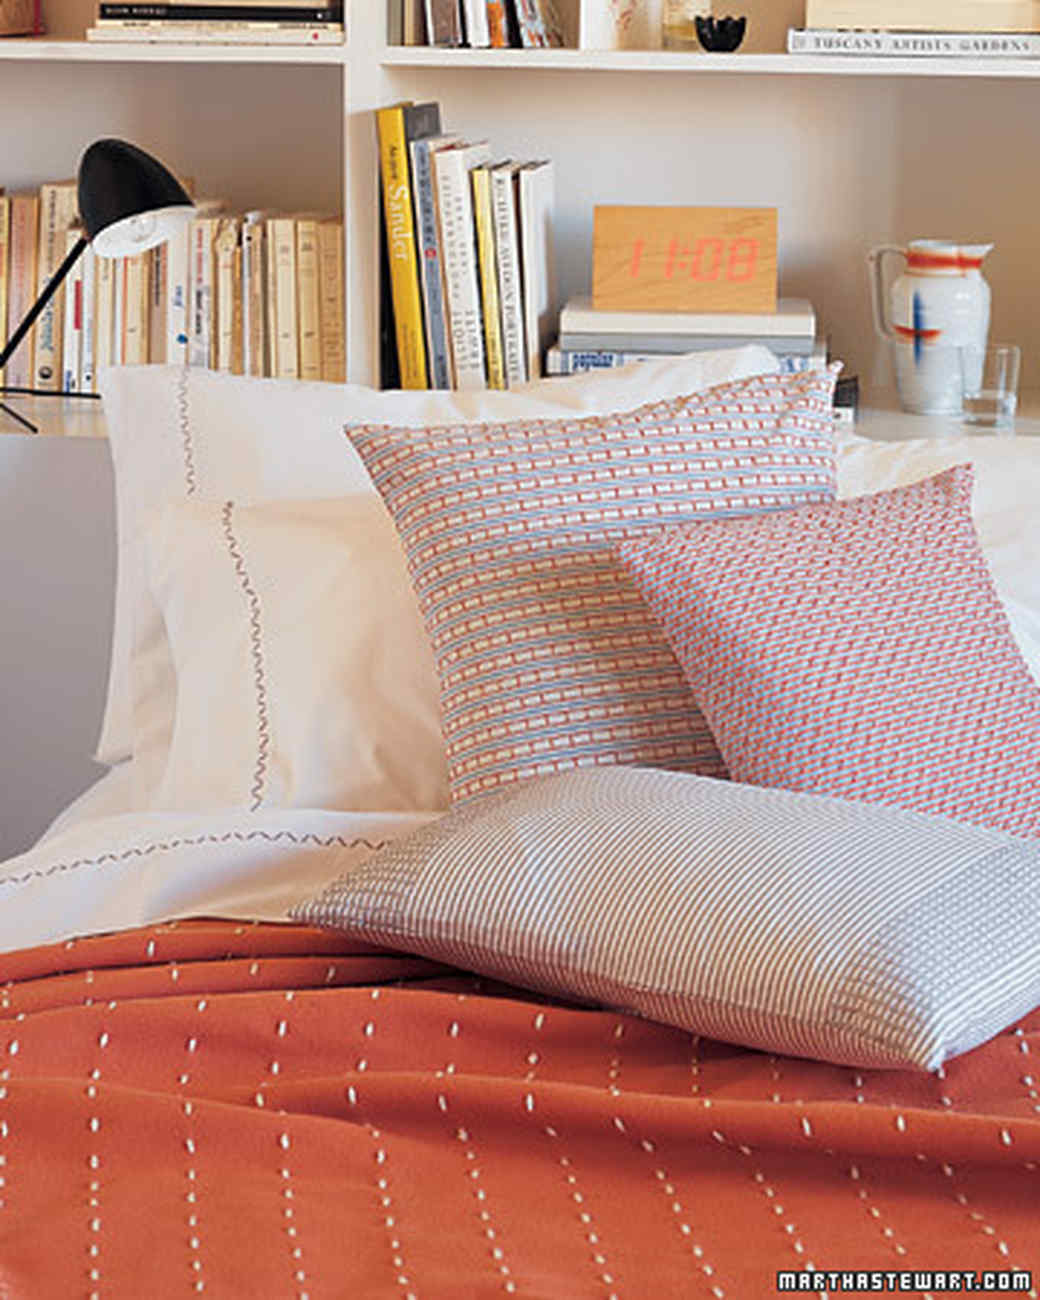 26 pillow projects that are cozy comfortable and easy to make martha stewart - Pillow Design Ideas